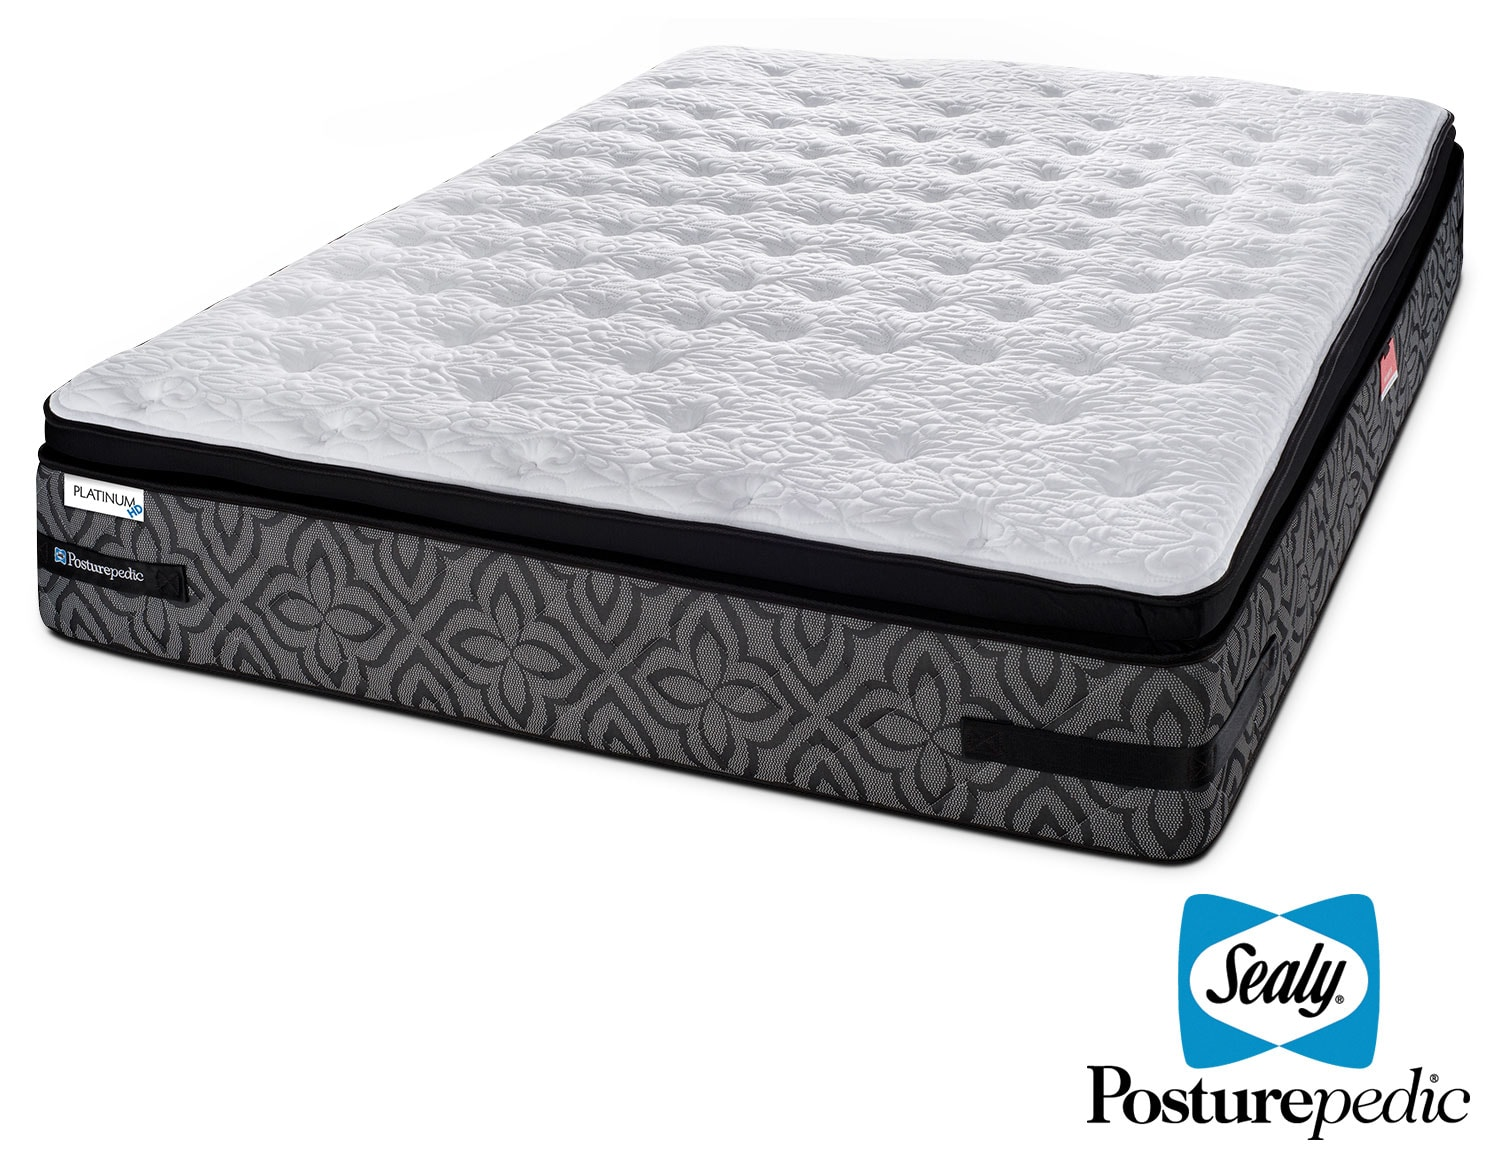 Sealy Posturepedic Mattress Queen Sealy Posturepedic 2 K